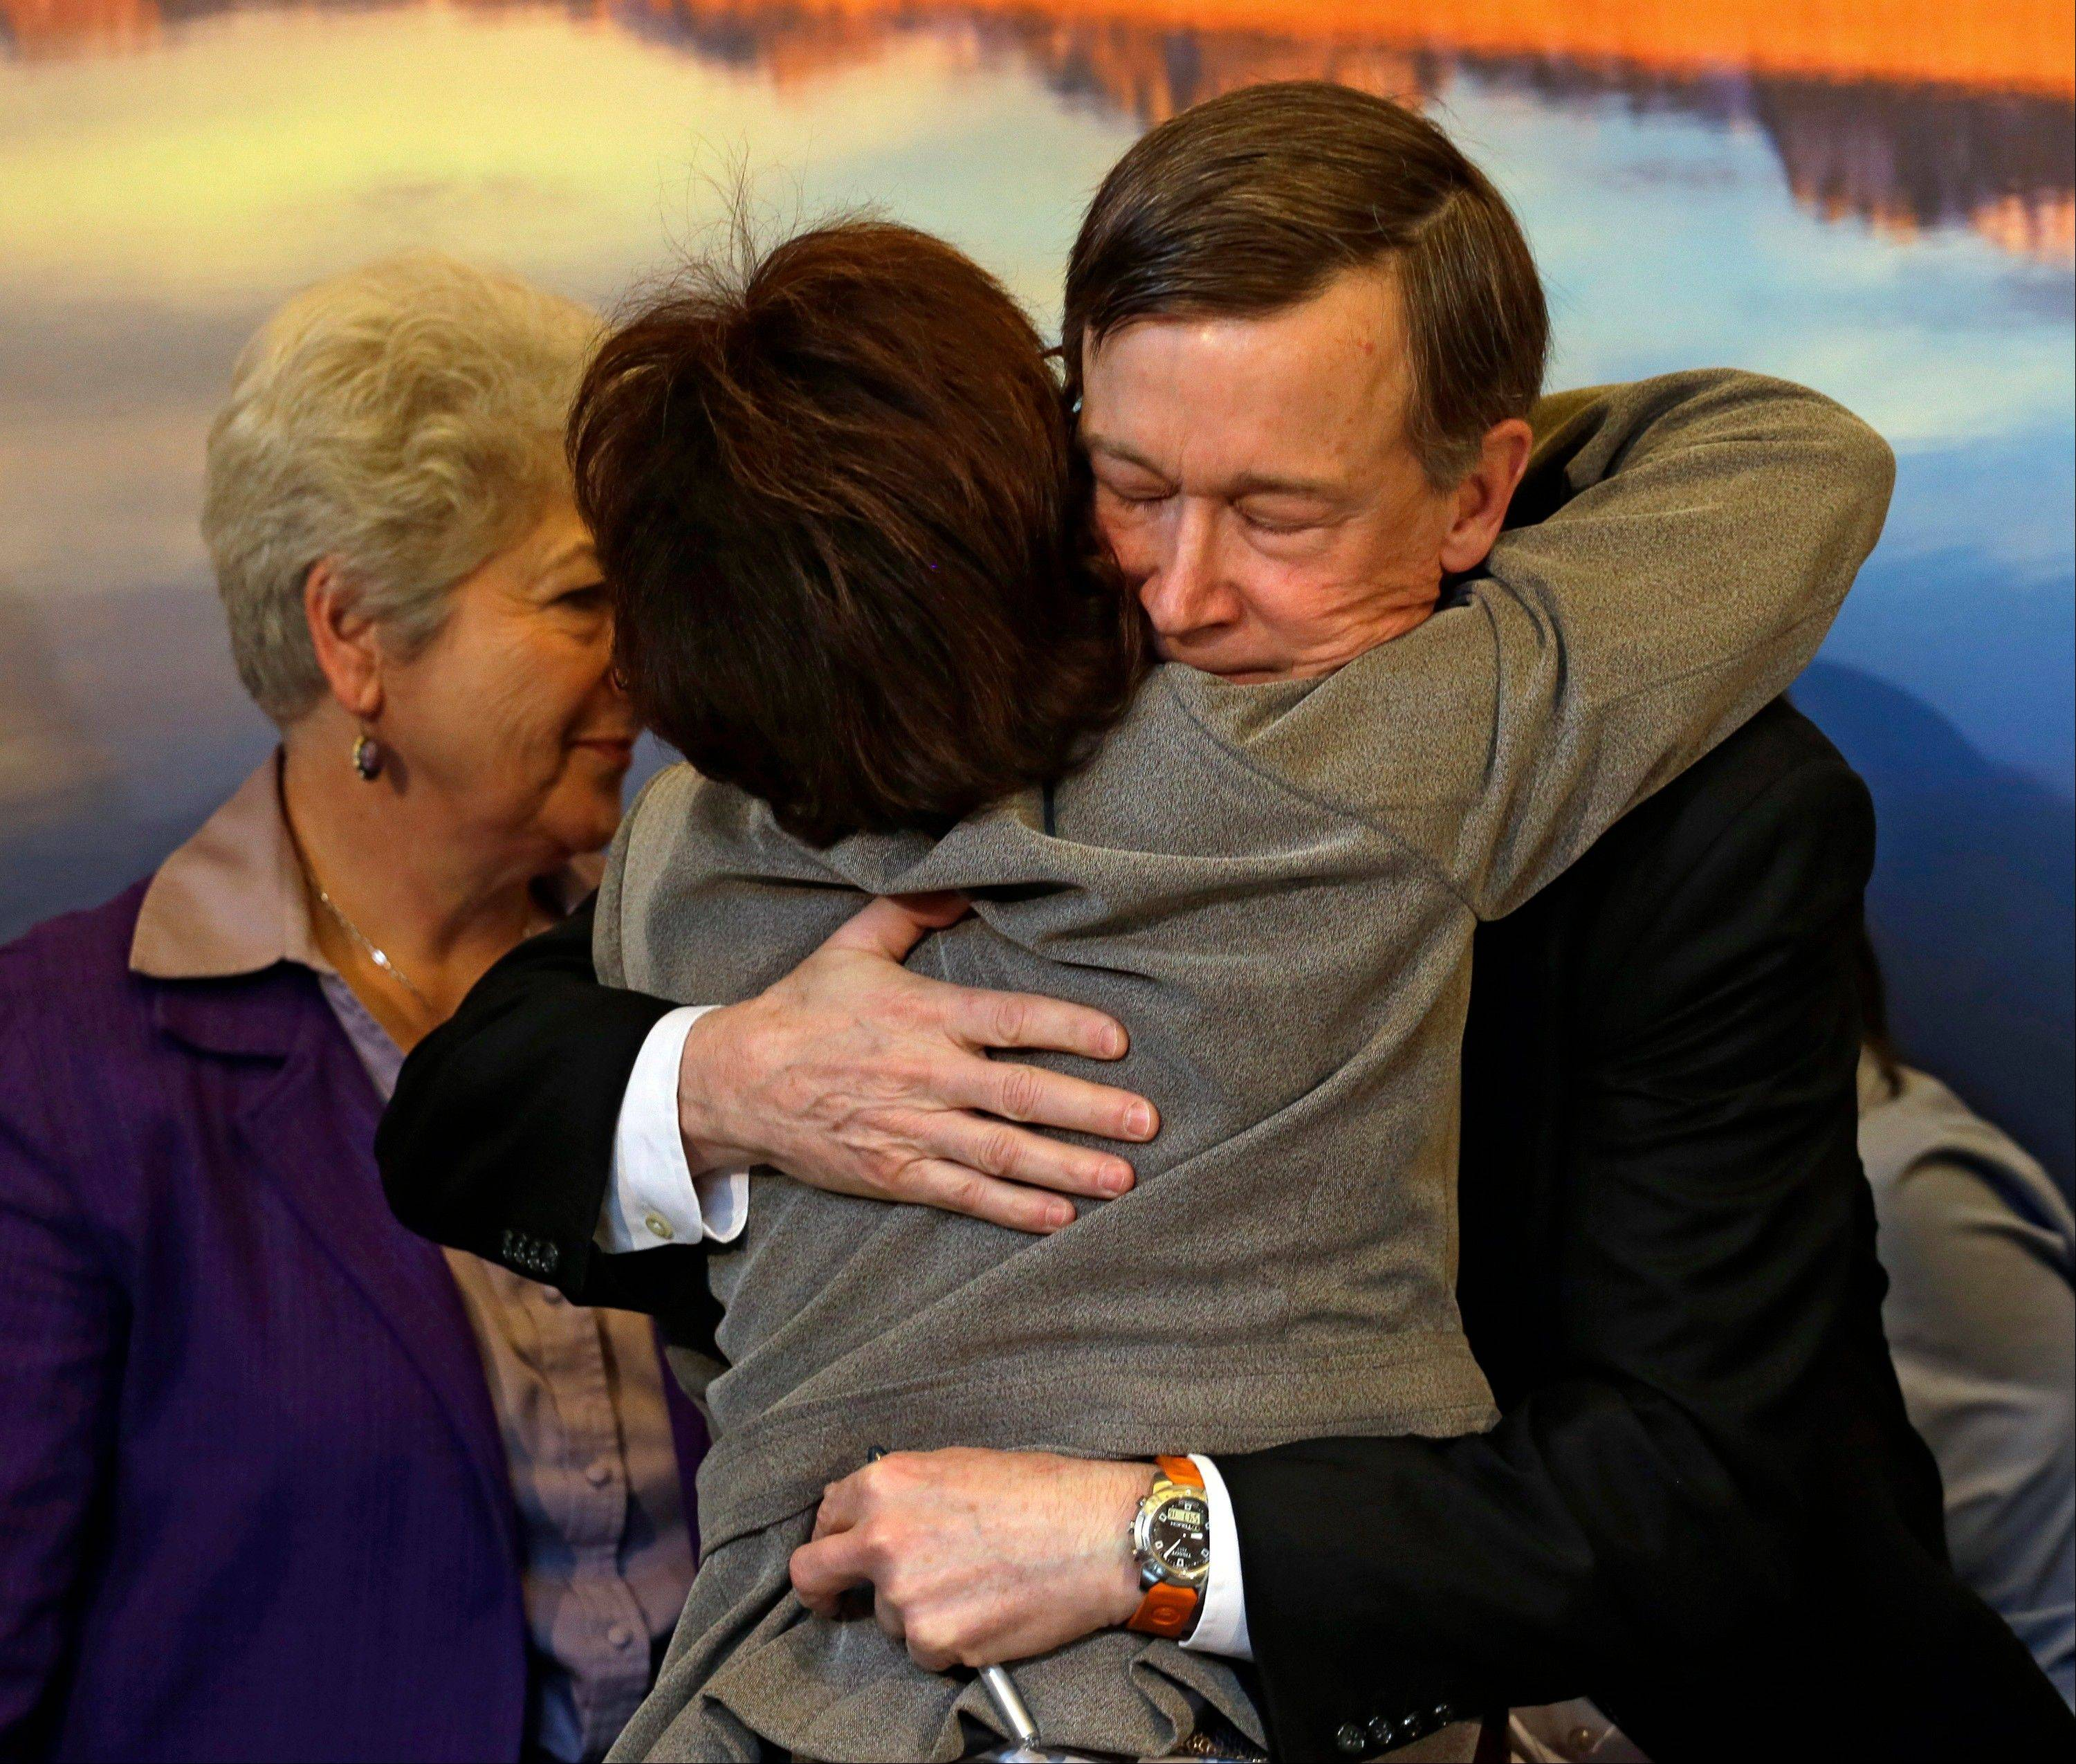 Colorado Gov. John Hickenlooper, right, is hugged by Colorado Rep. Rhonda Fields after he signed gun control bills into law at the Capitol in Denver on Wednesday. Fields was a co-sponsor of bills on background checks and the size of ammunition magazines.